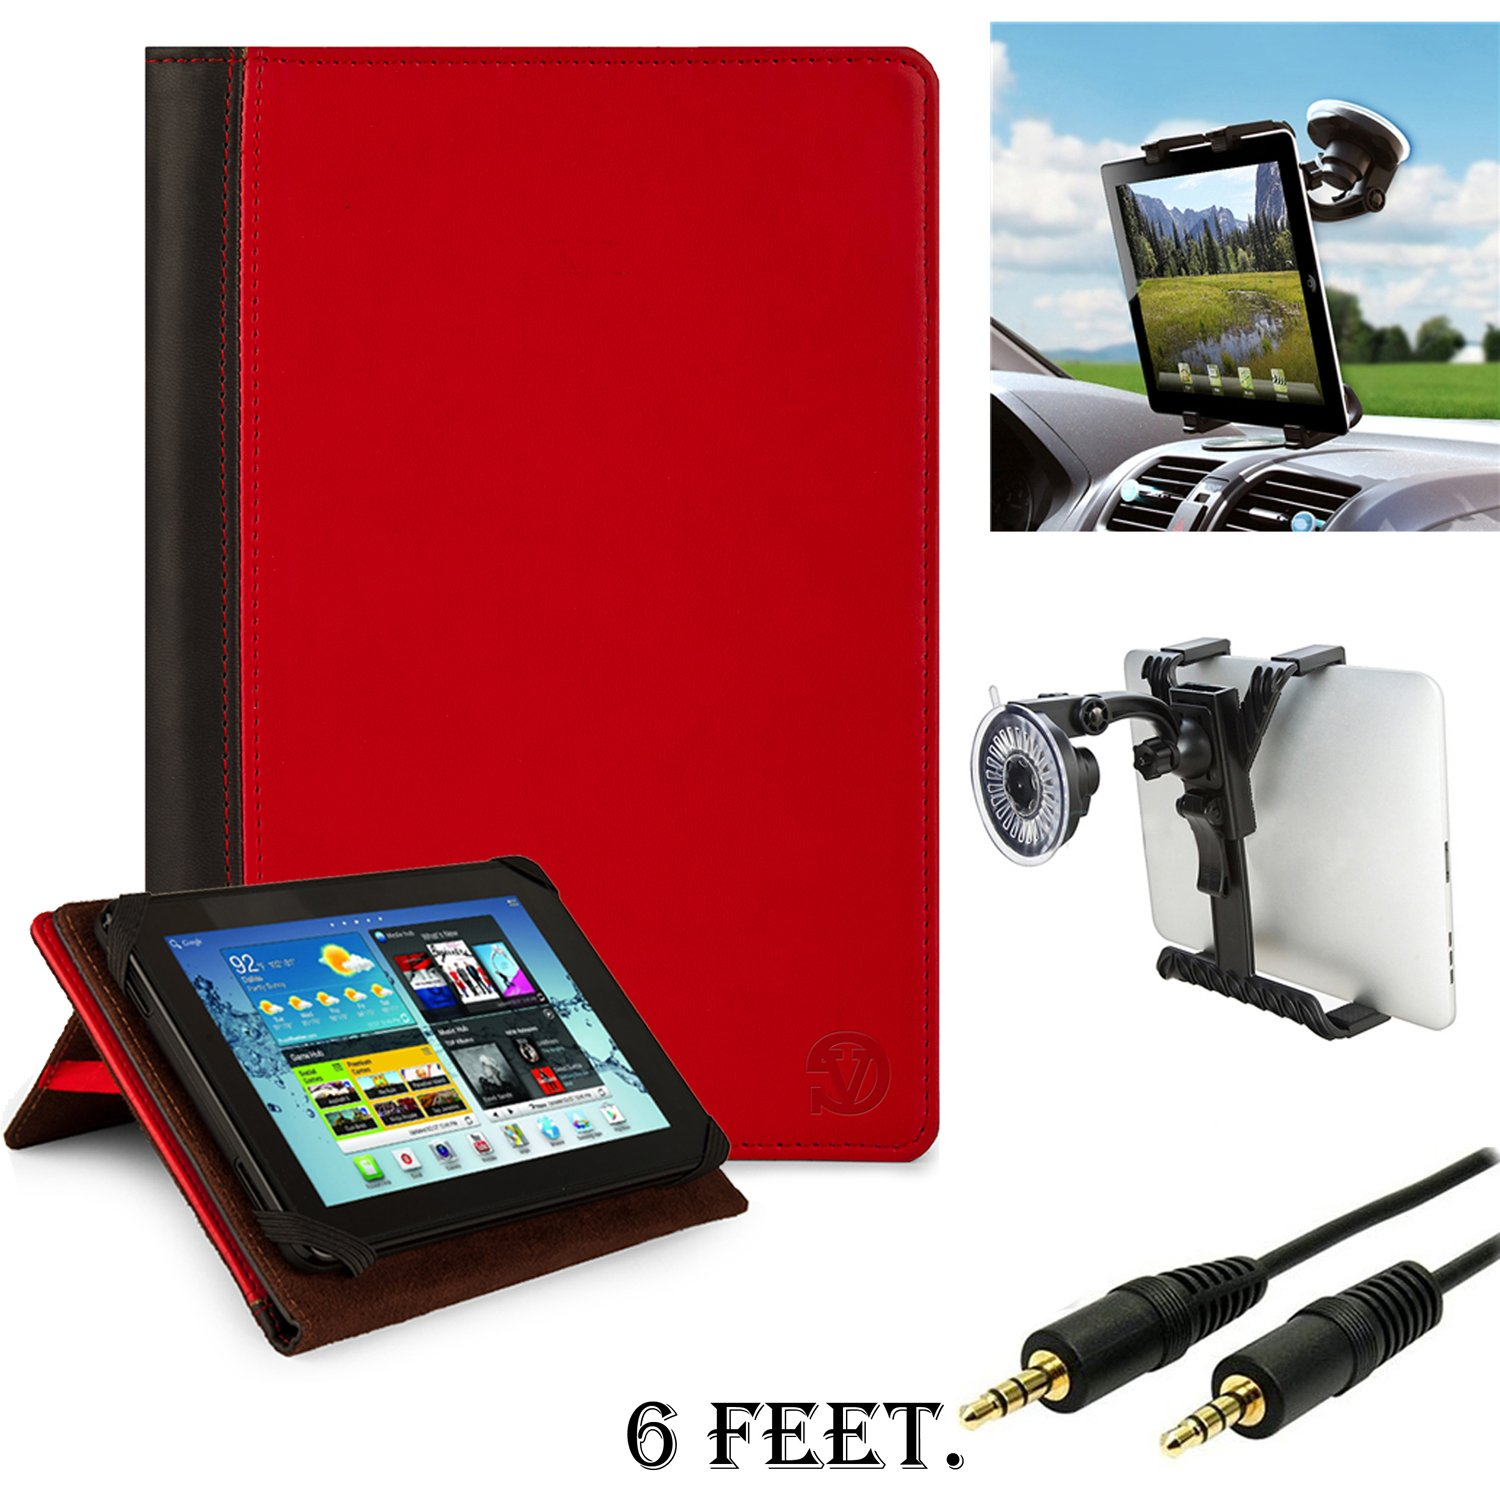 Premium Hard Cover Portfolio Jacket Mary Case, Stand Alone, Lightweight, Protective Slimline Sturdy, Flip Folio Book Style Design For Set1 For HP SlateBook X2 10.1 inch Android 4.2 (Jelly Bean) Tablet + 3.5mm Stereo Audio Cable (6 feet) + Size Adjustable